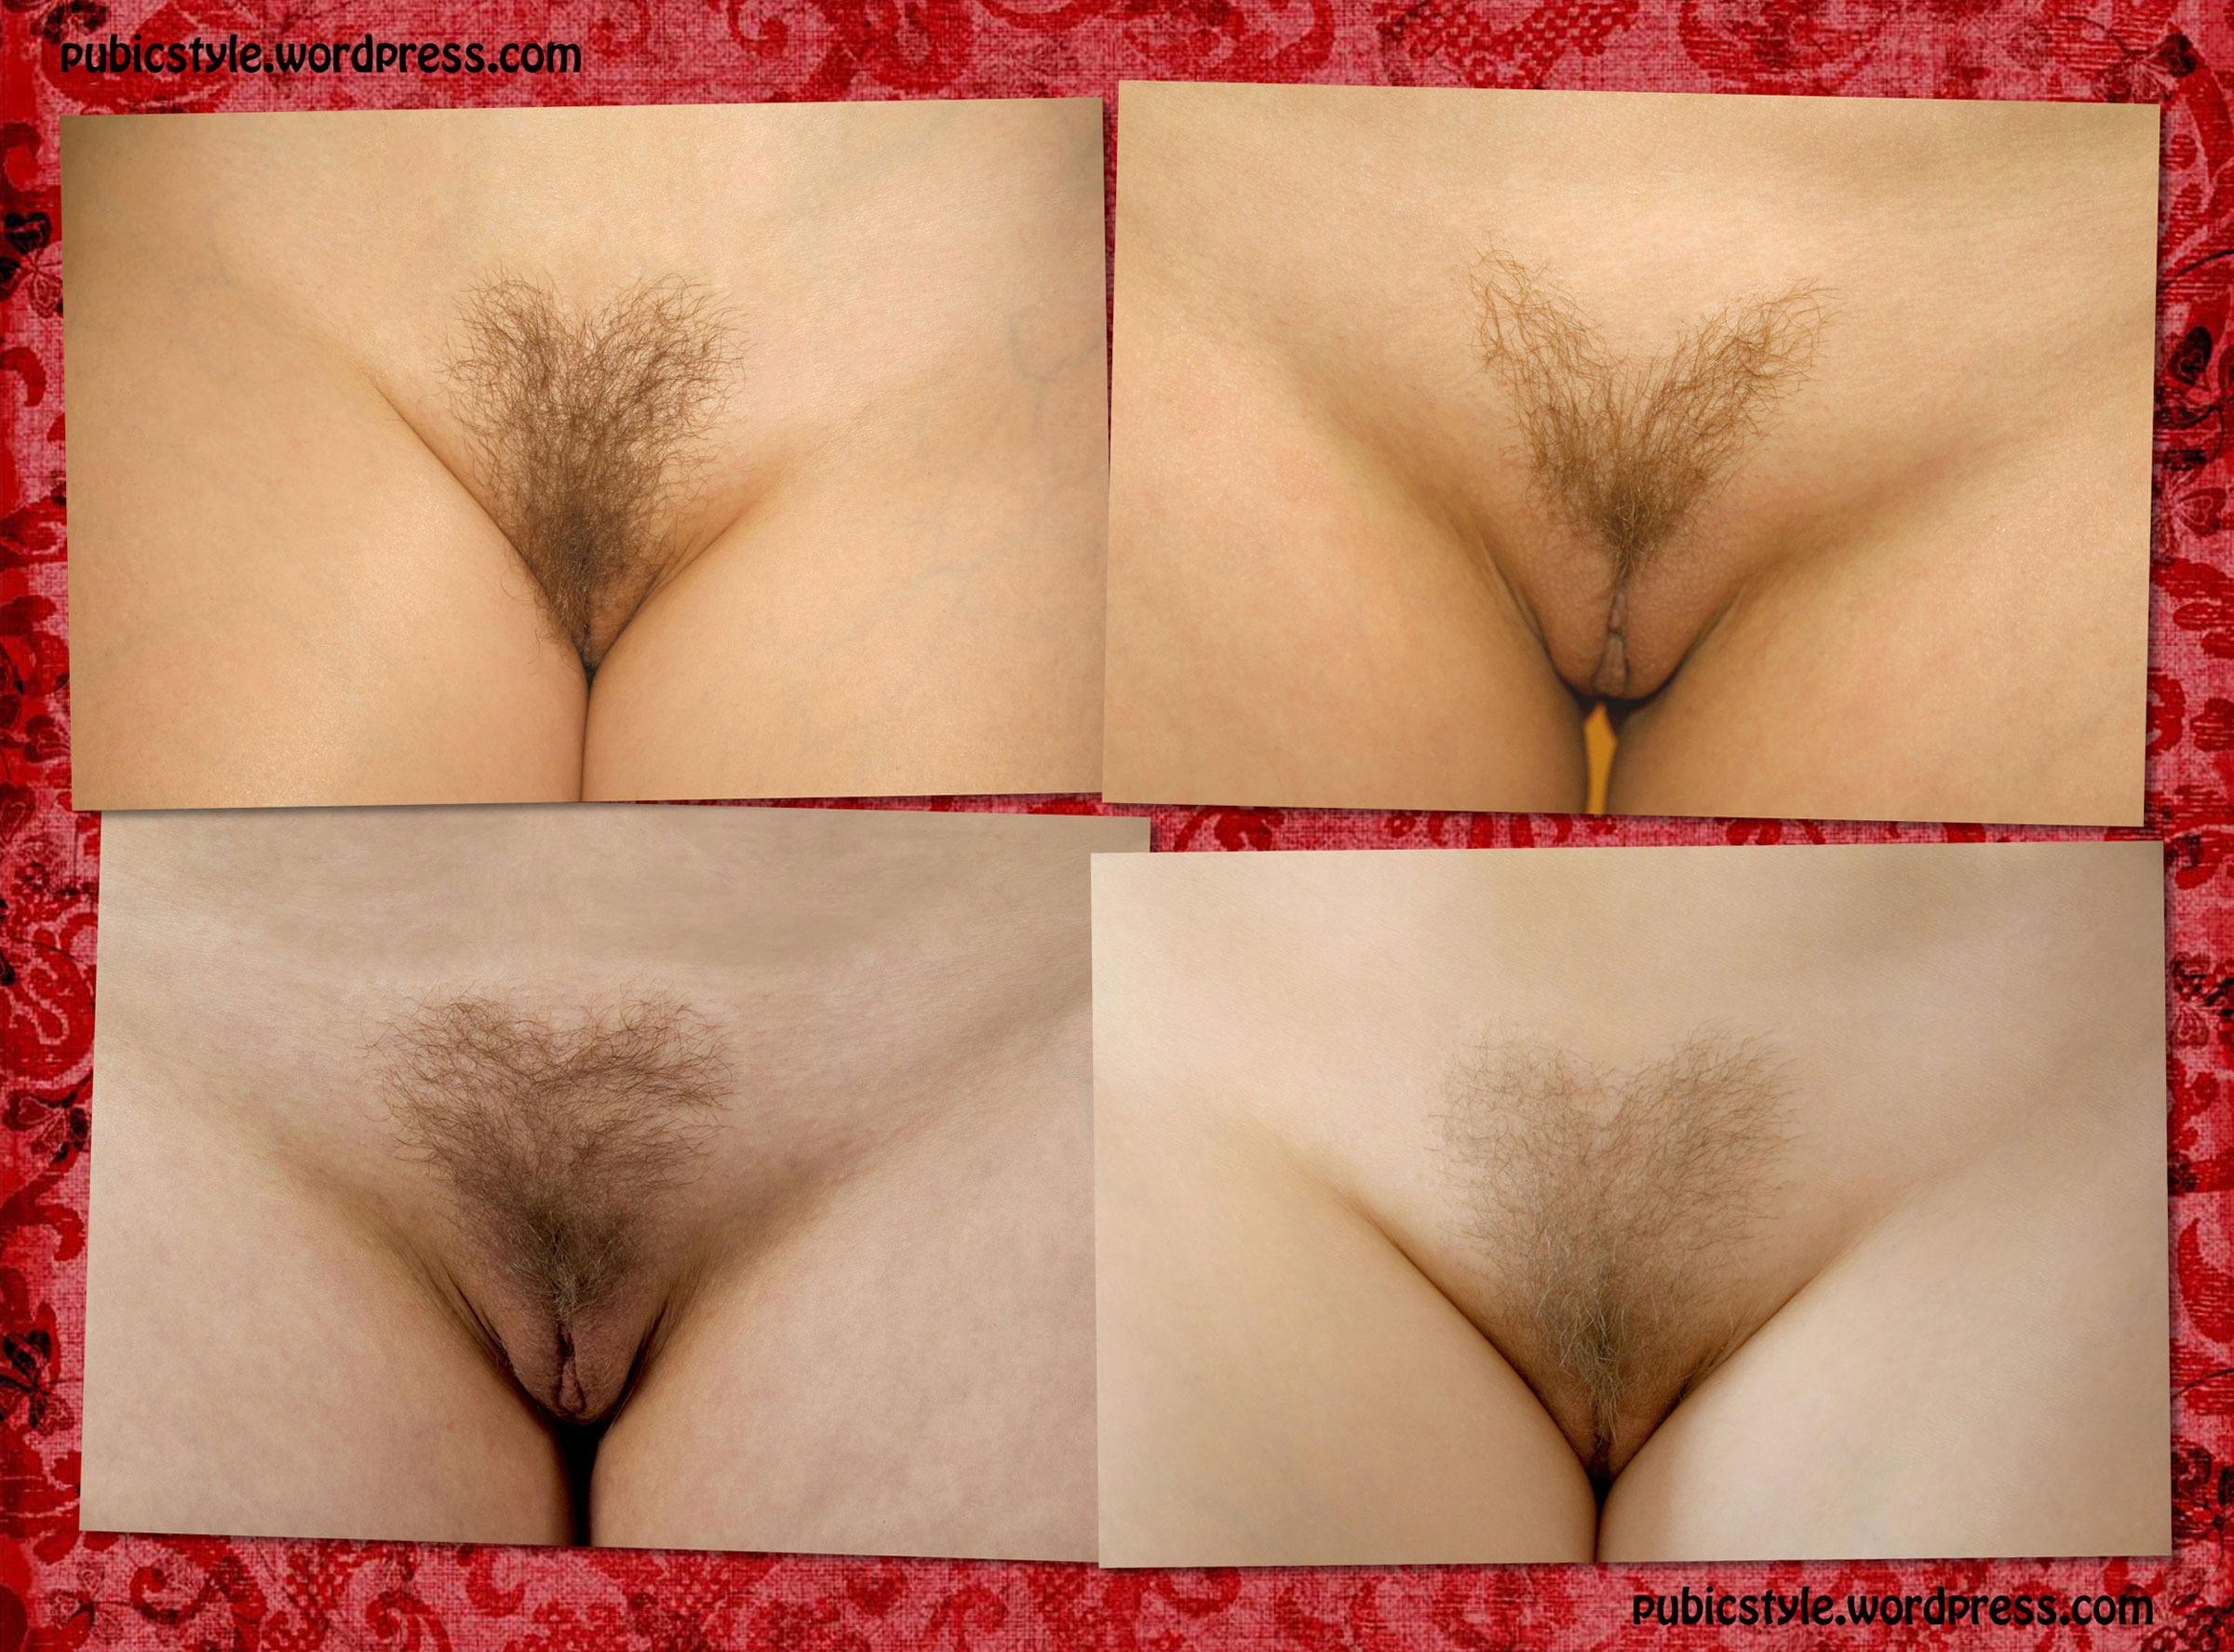 Pubic hair styles  pubicstyle